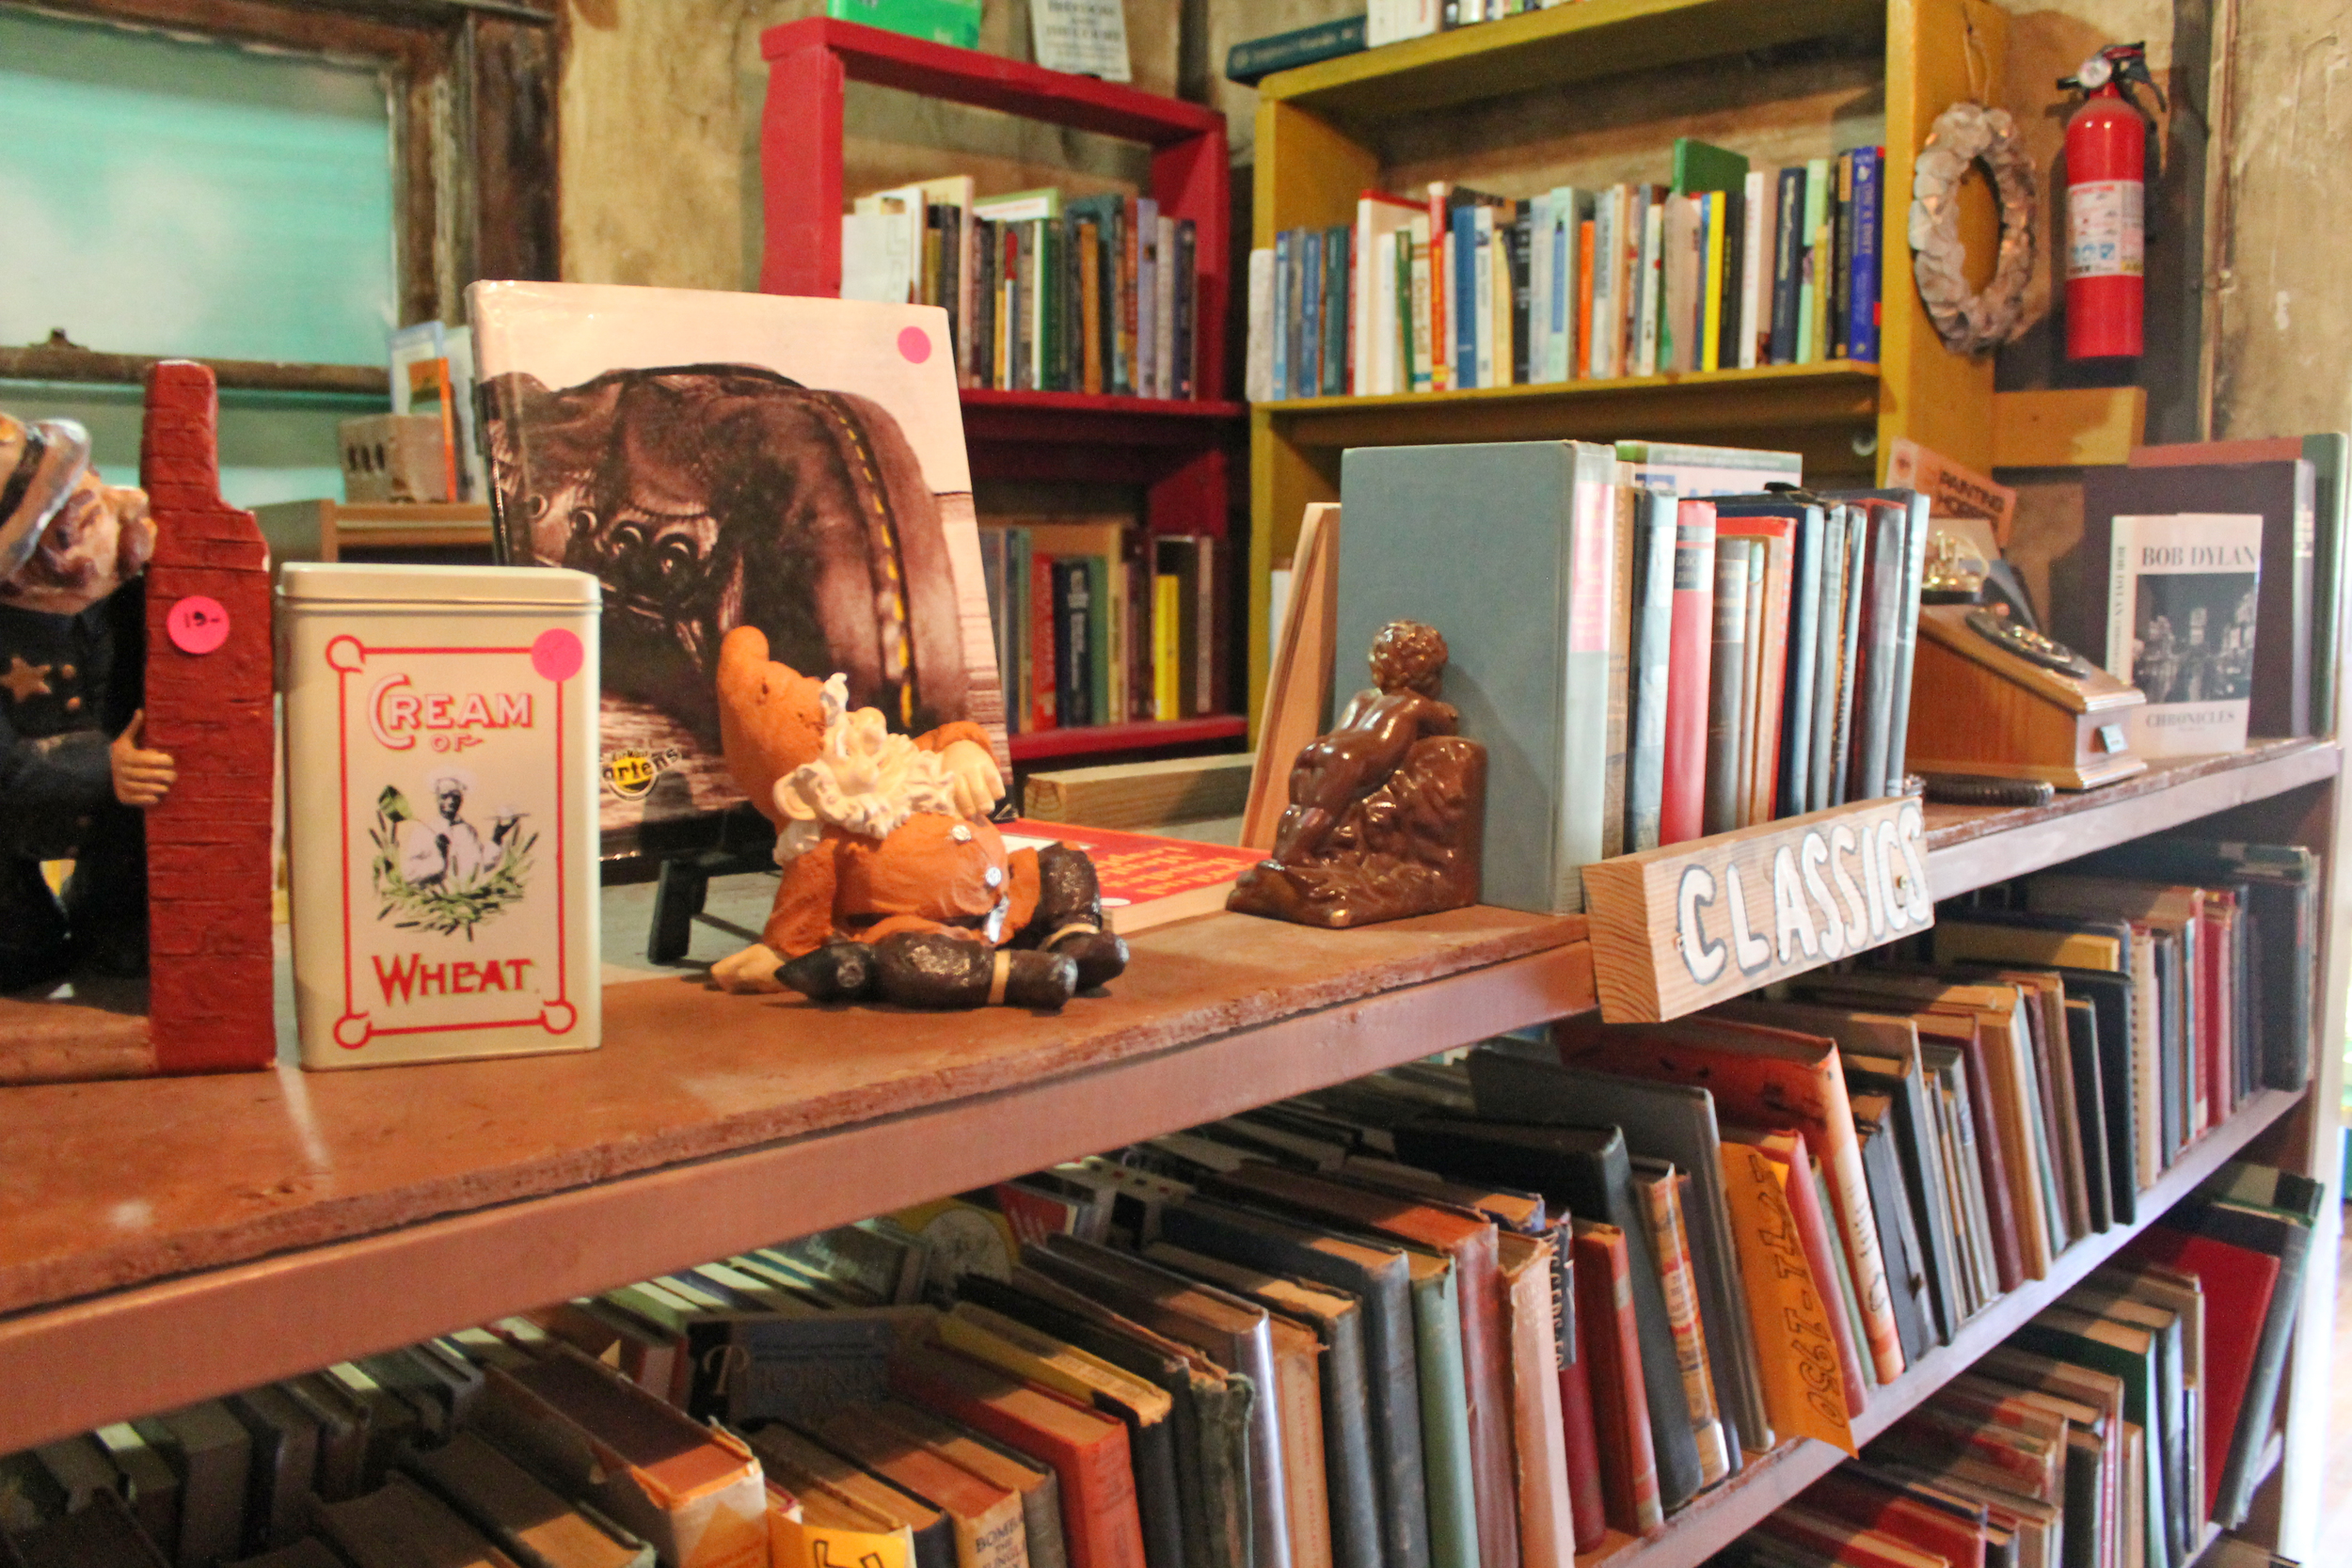 Lawn Gnome Publishing and Bookstore - Photo by Ali Reese